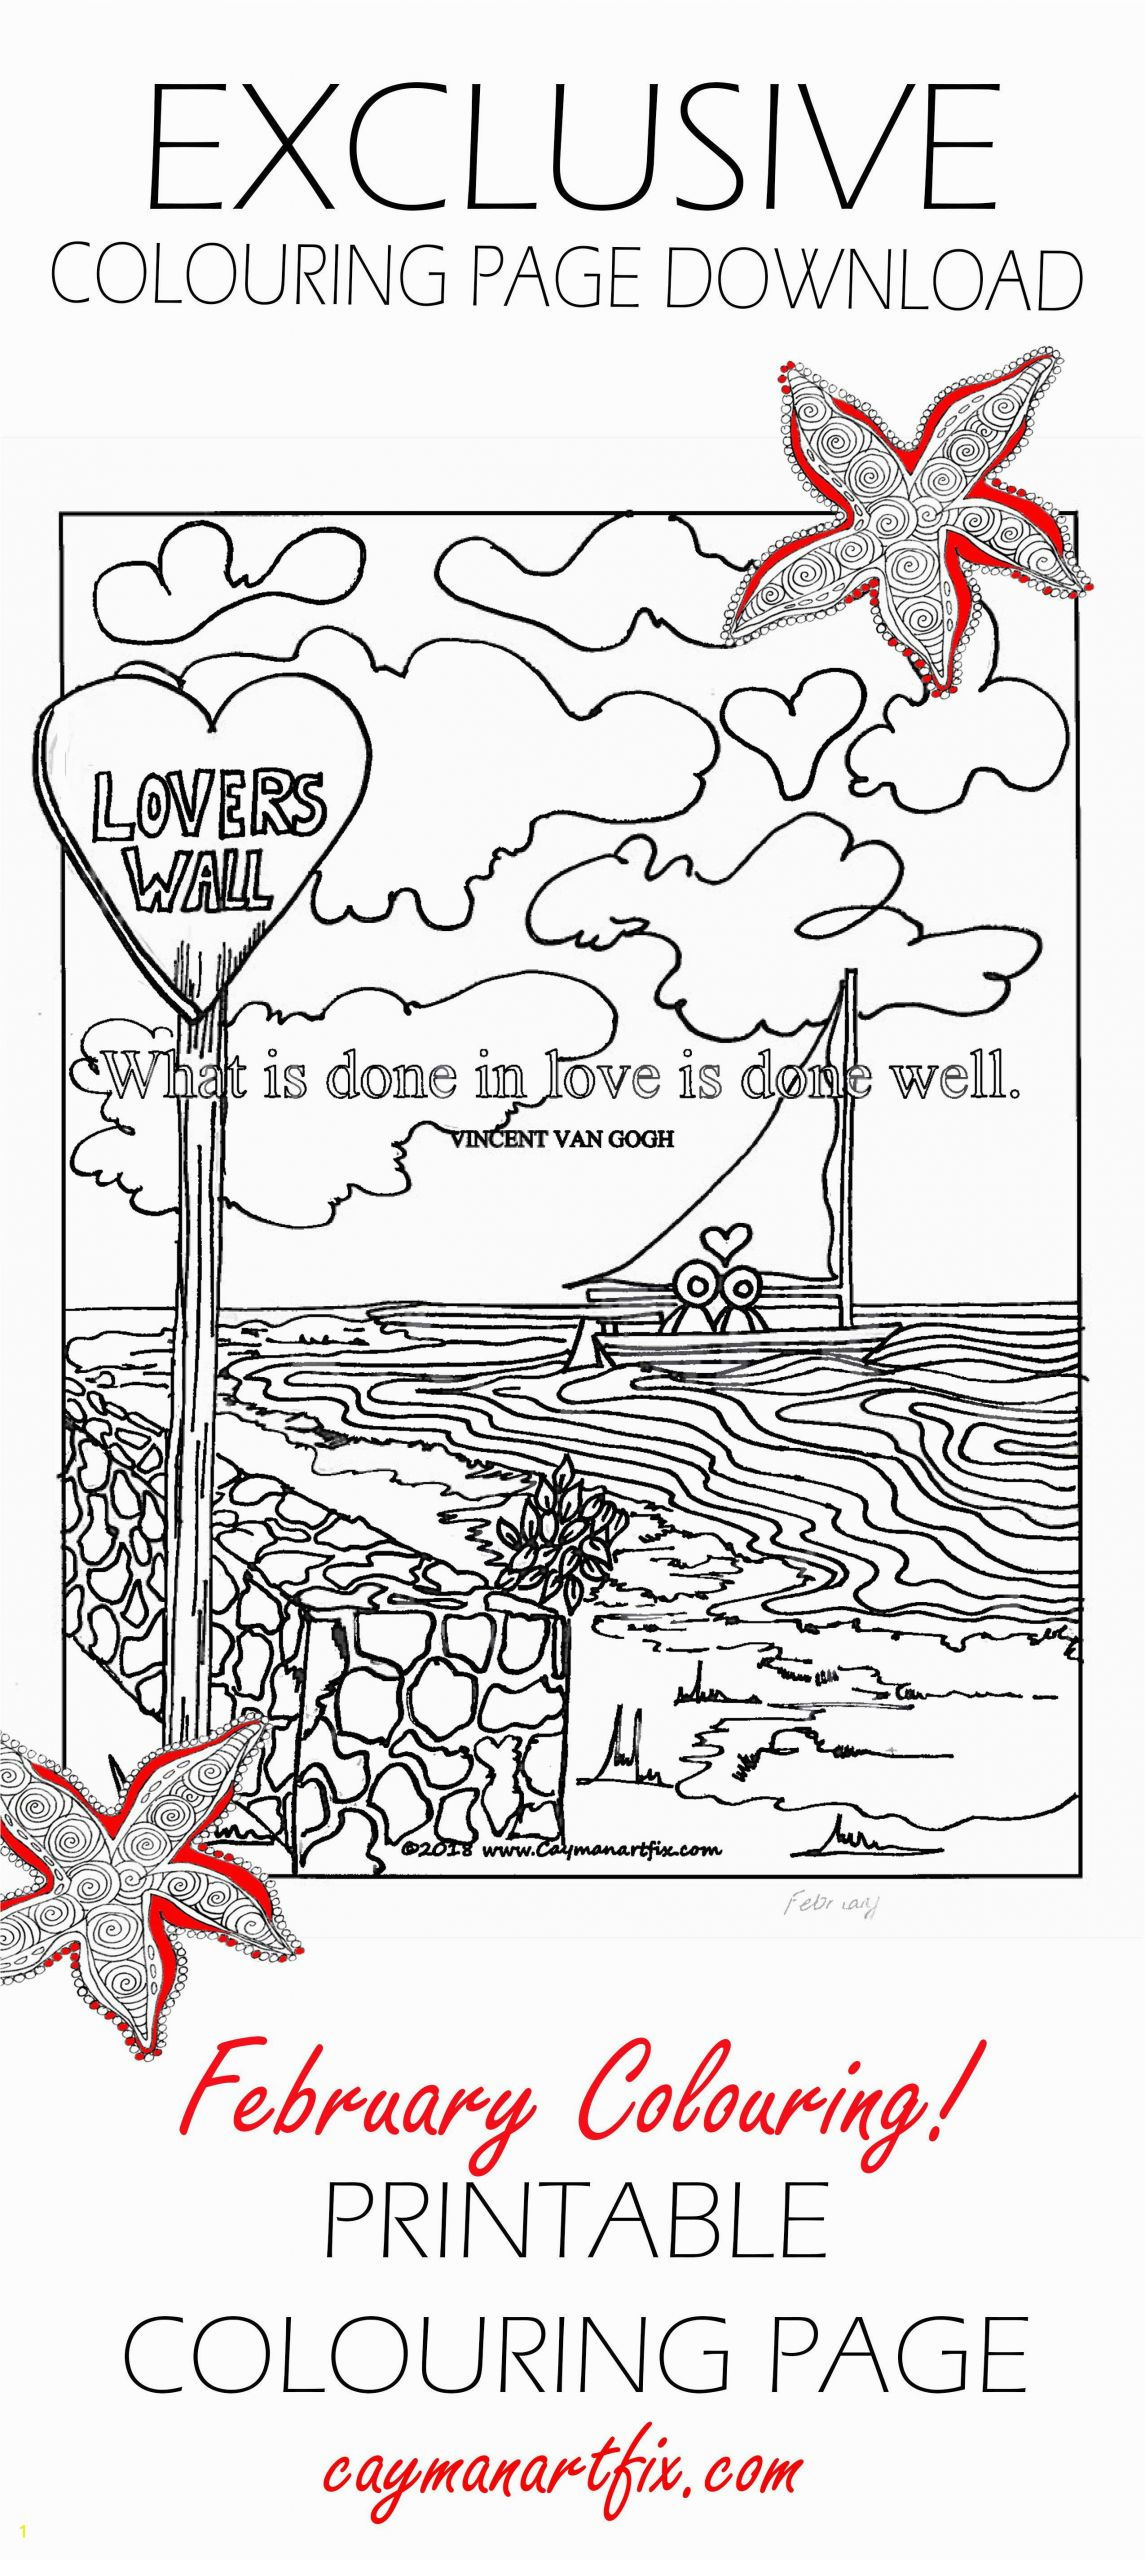 Free Up Coloring Pages Download Our Exclusive February Colouring Page